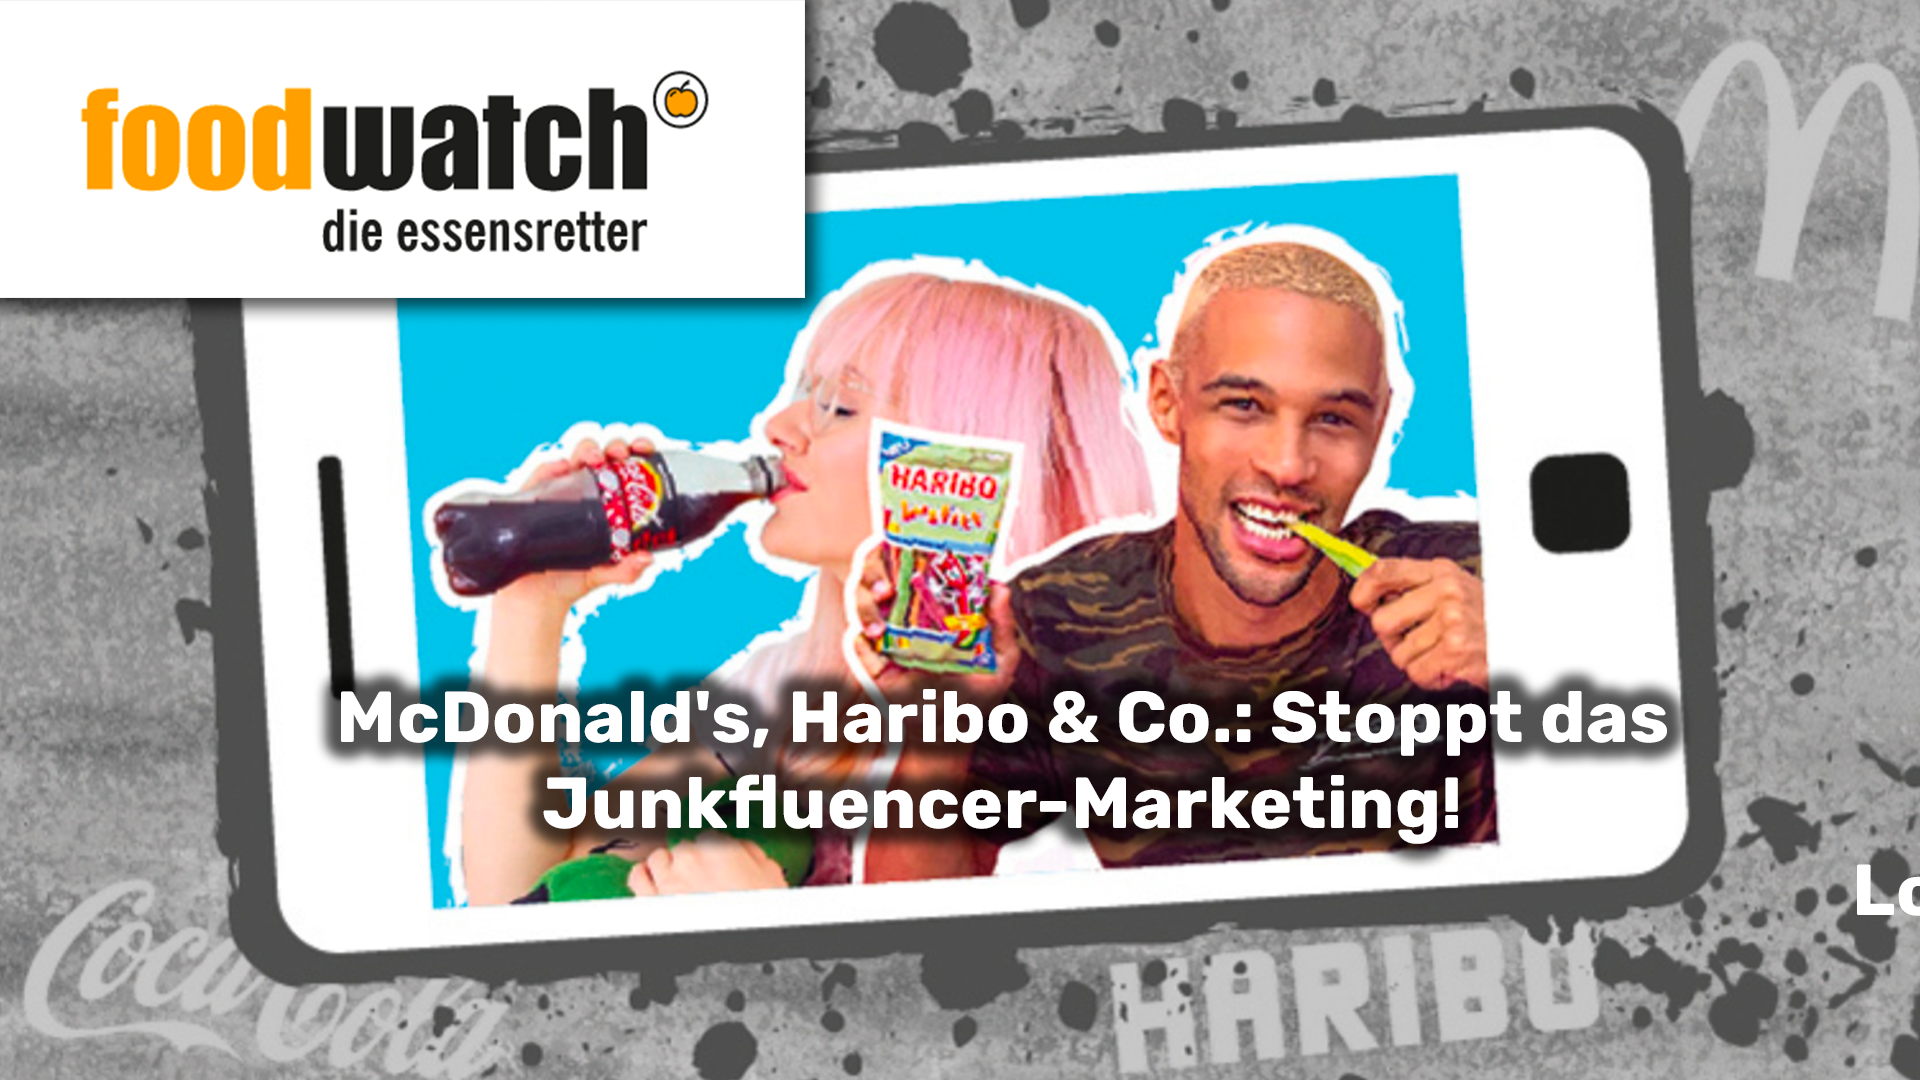 McDonald's, Haribo & Co.: Stoppt das Junkfluencer-Marketing!